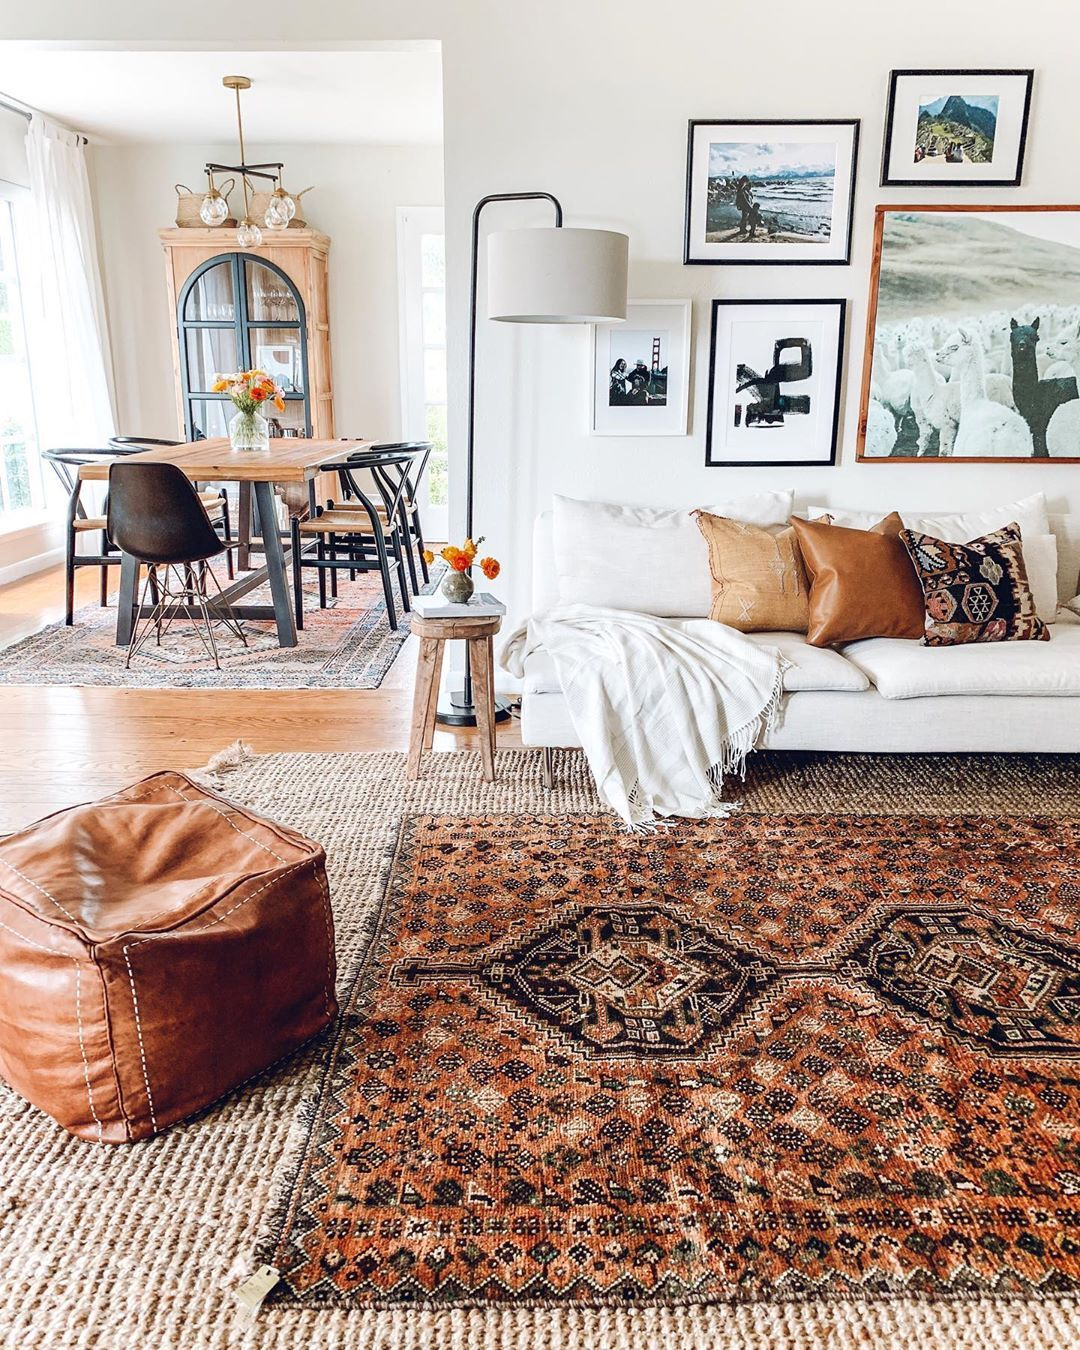 Today I Talked A Bit About Rug Layering On My Stories And I Linked The Two Rugs I Use As T Layered Rugs Living Room Rugs In Living Room Persian Rug